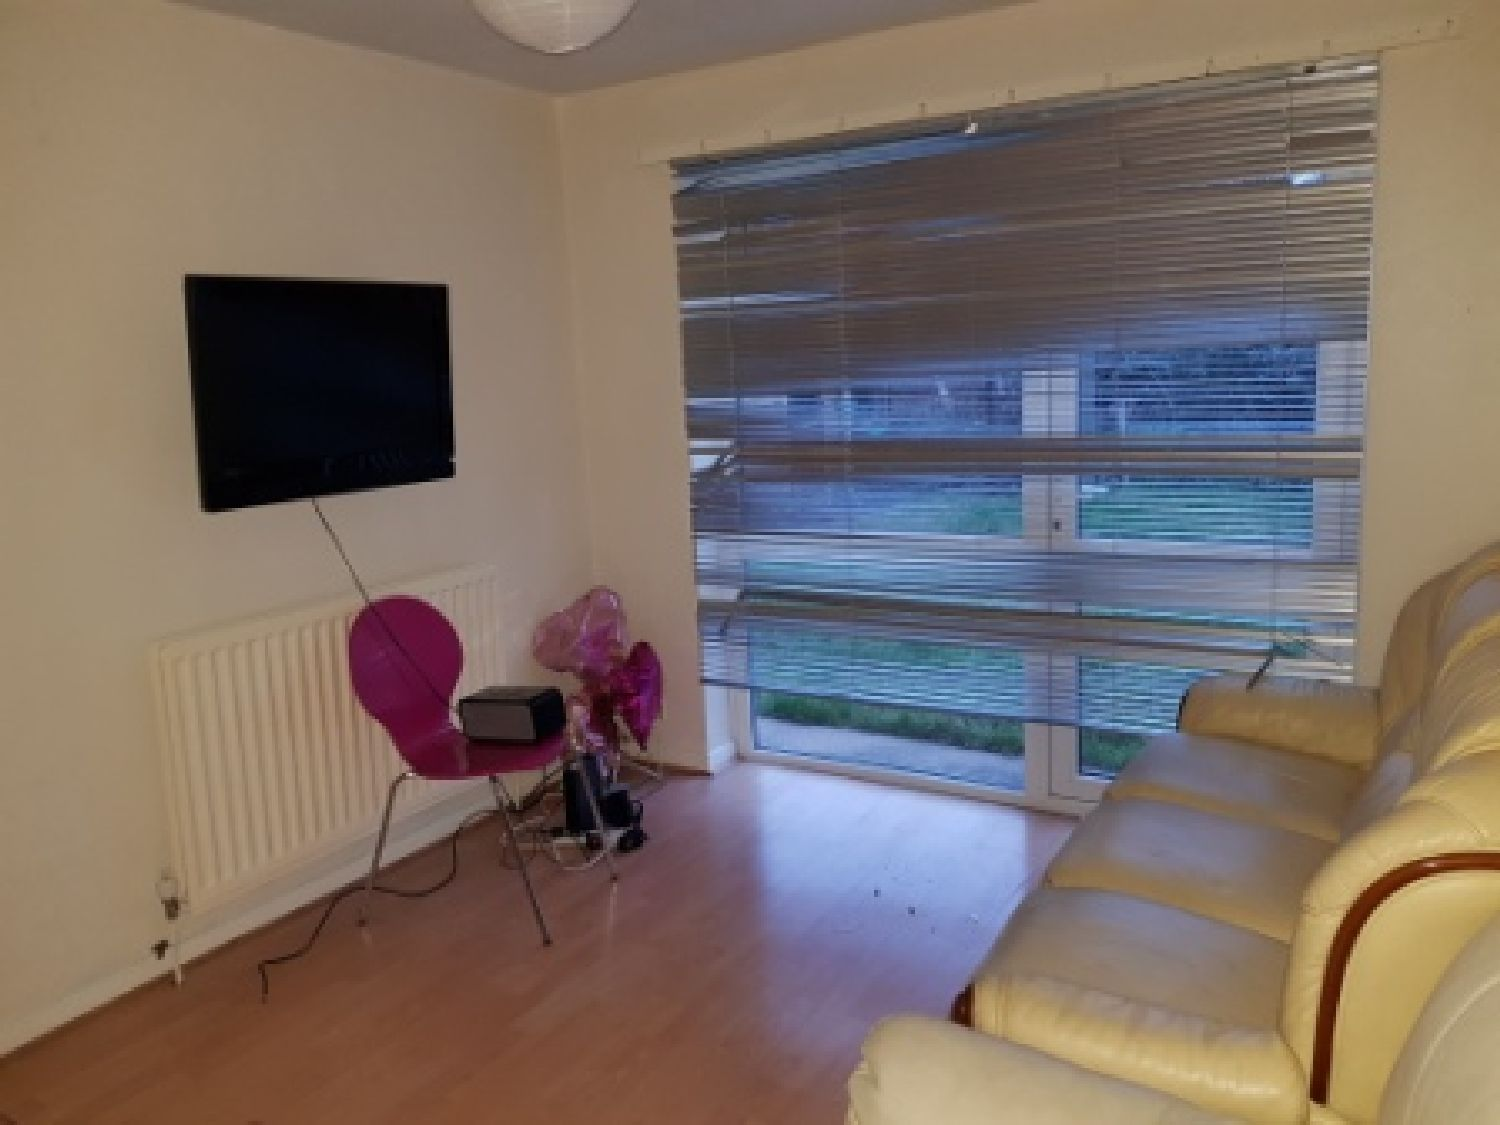 4 Bedrooms House Share for rent in Swenson Avenue, Lenton, Nottinghamshire, NG7 2LP